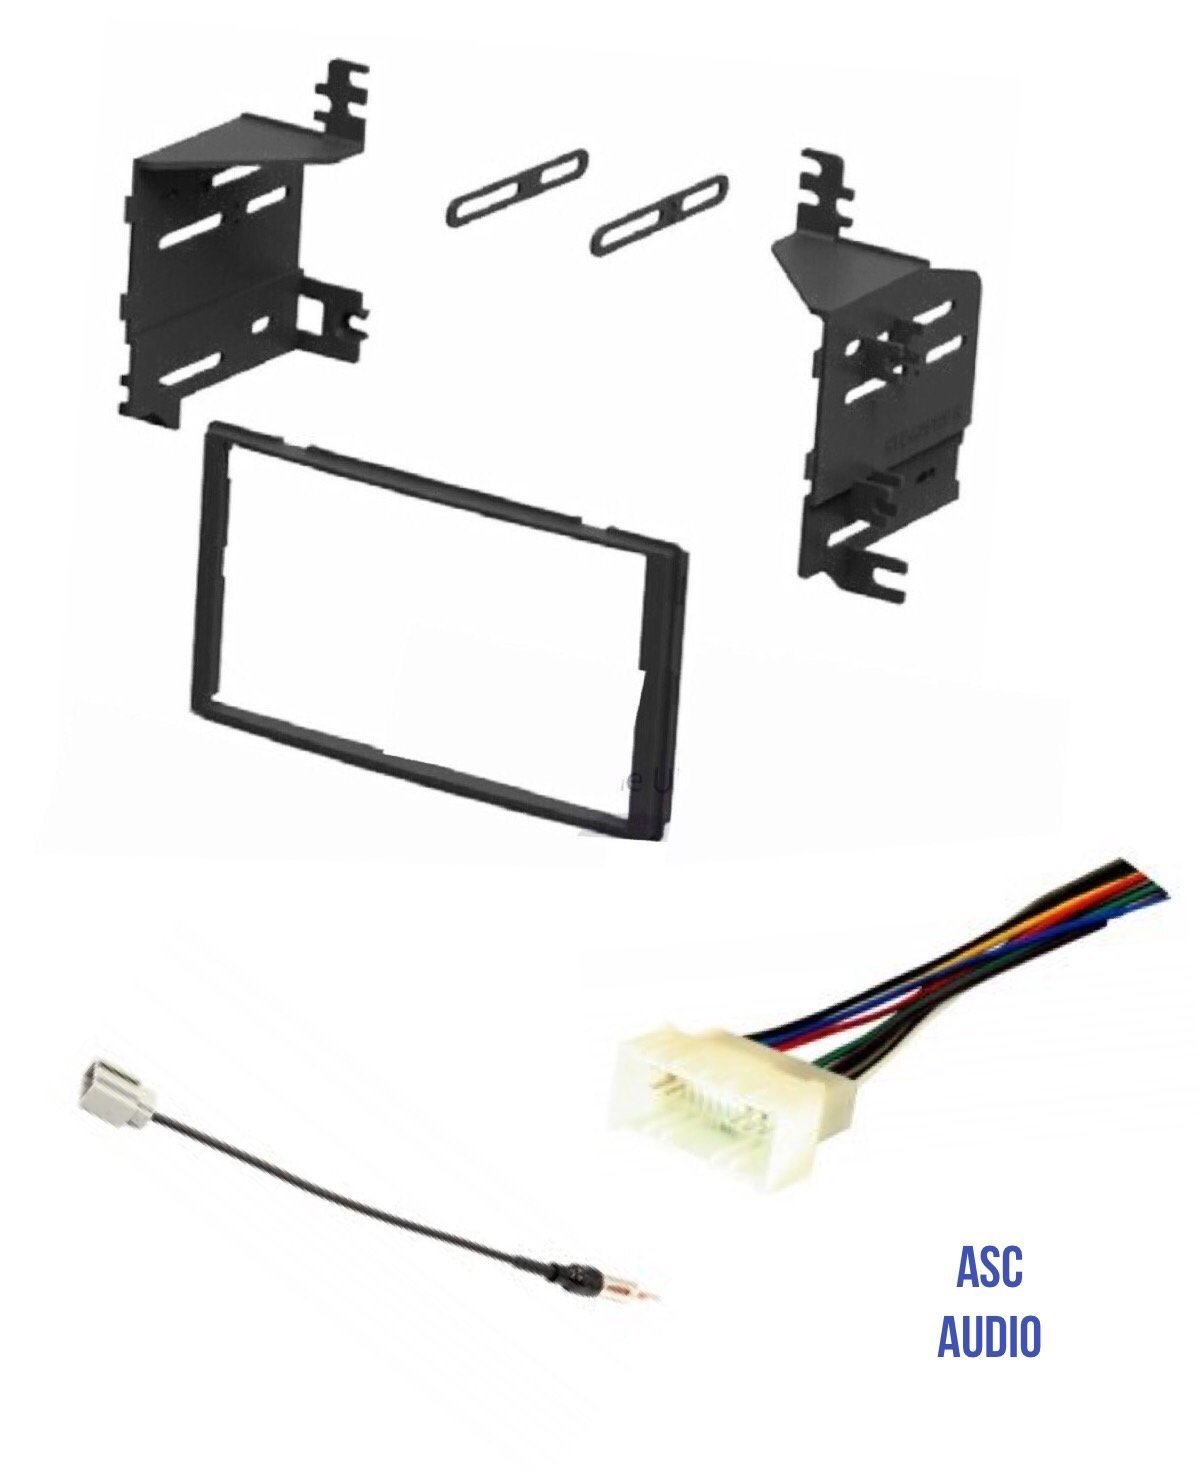 ASC Car Stereo Radio Install Dash Kit, Wire Harness, and Antenna Adapter for installing an Aftermarket Double Din Radio for 2009 2010 Kia Sportage